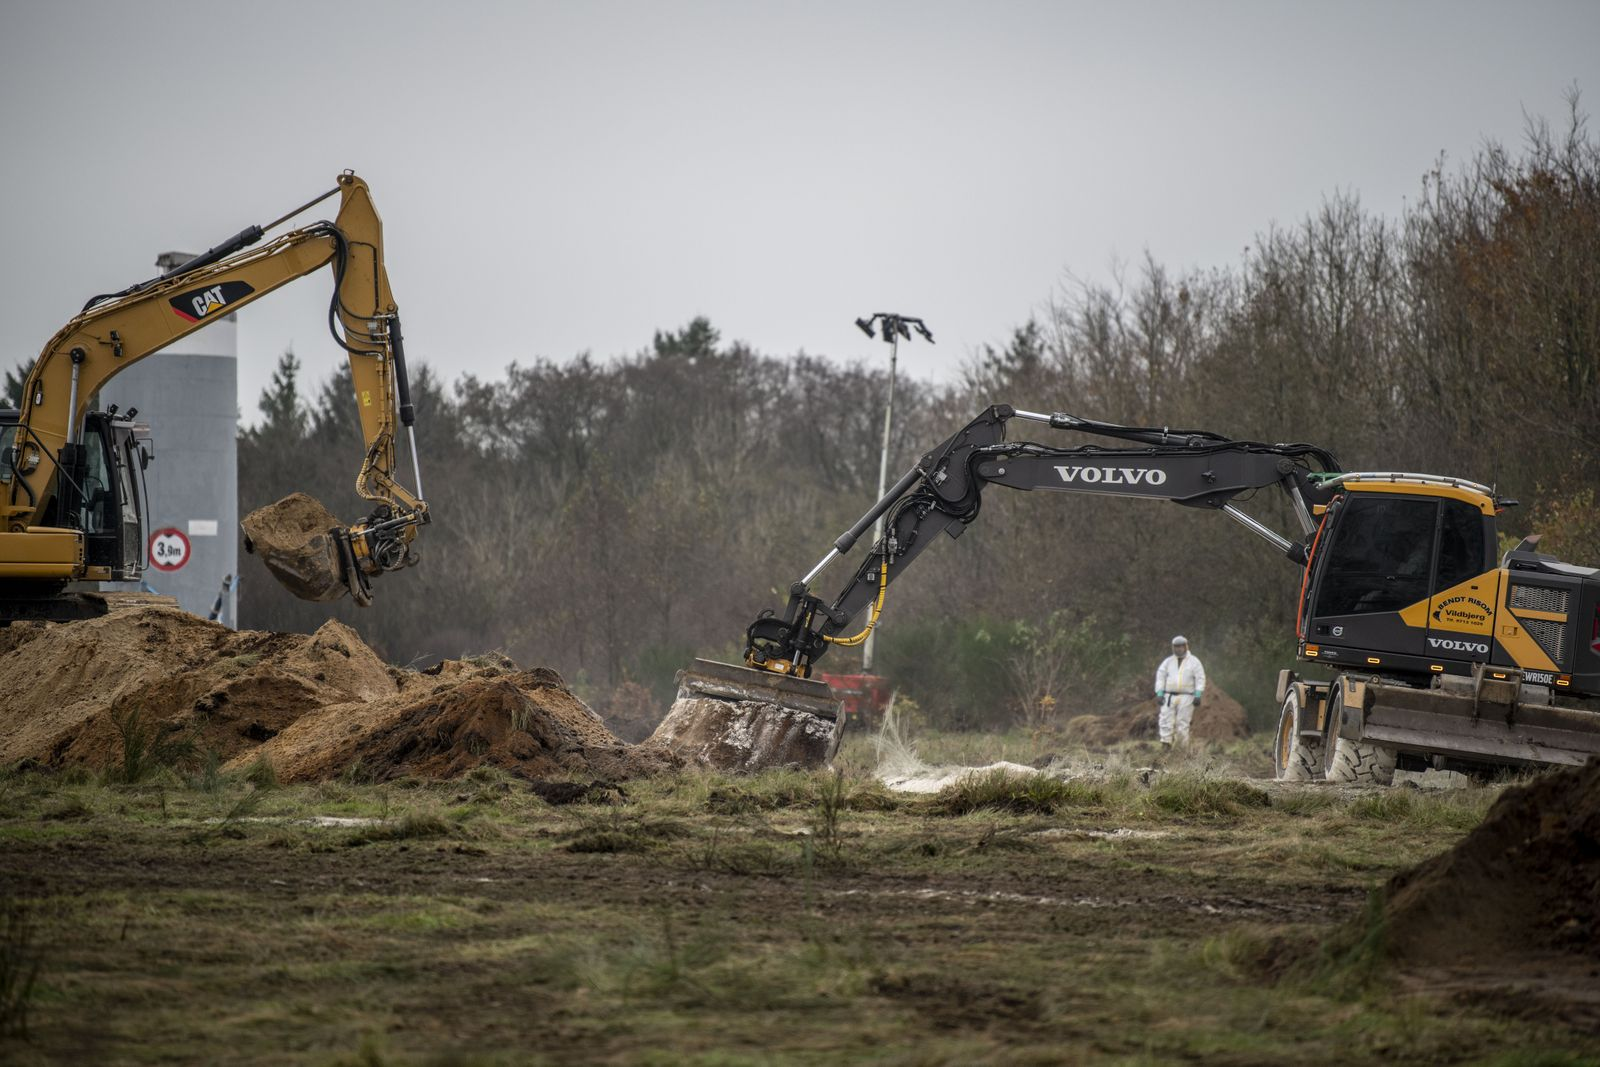 Culled mink are buried in mass graves in Denmark, Holstebro - 09 Nov 2020